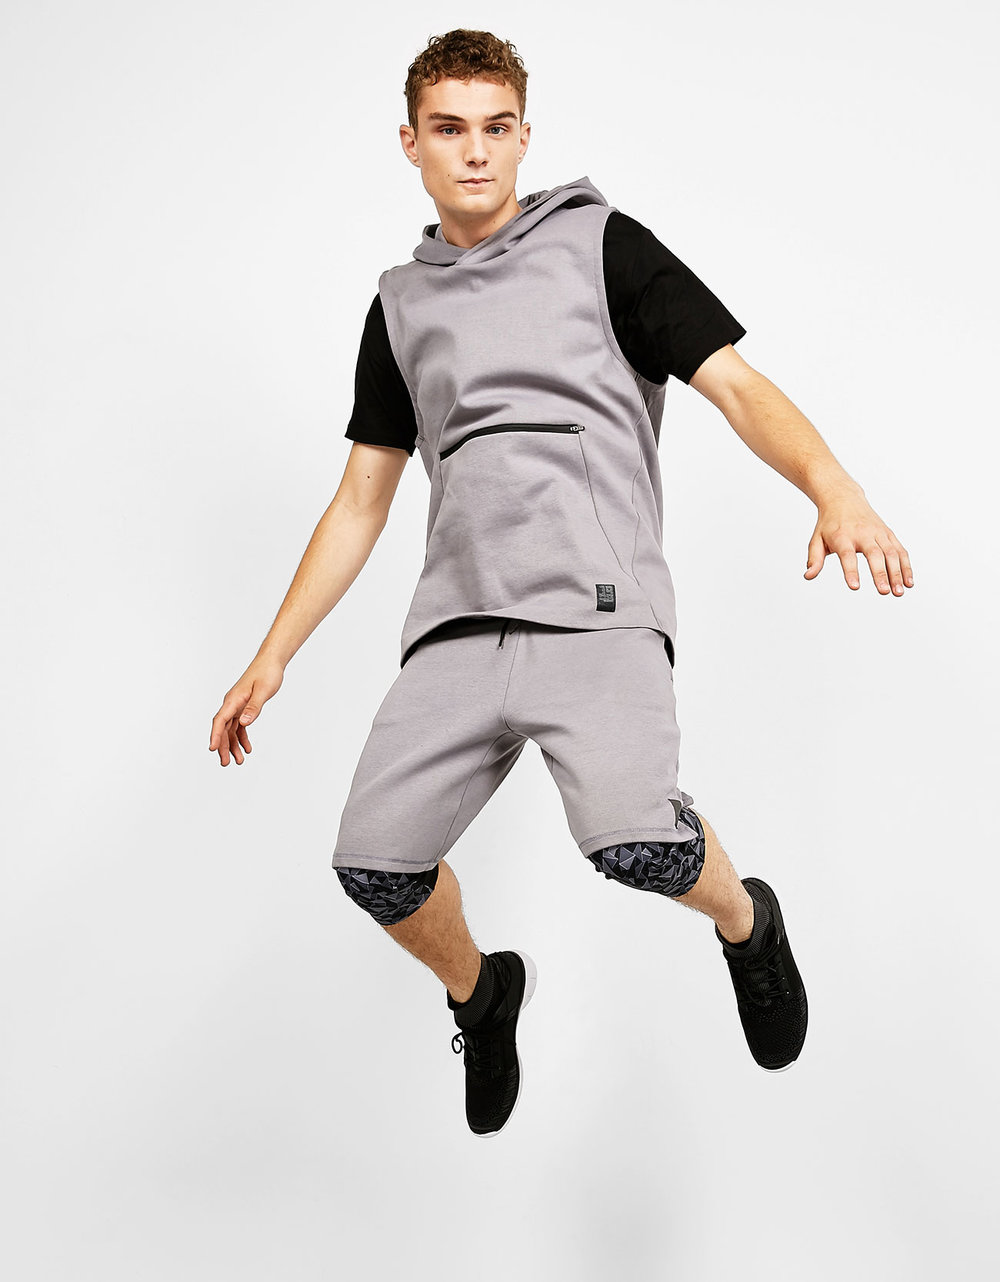 Hooded plush sport waistcoat, £22.99 Sports Bermuda shorts with zip detail, £19.99 All over print sport trousers, £19.99 Men's faux sock ankle boots, £39.99